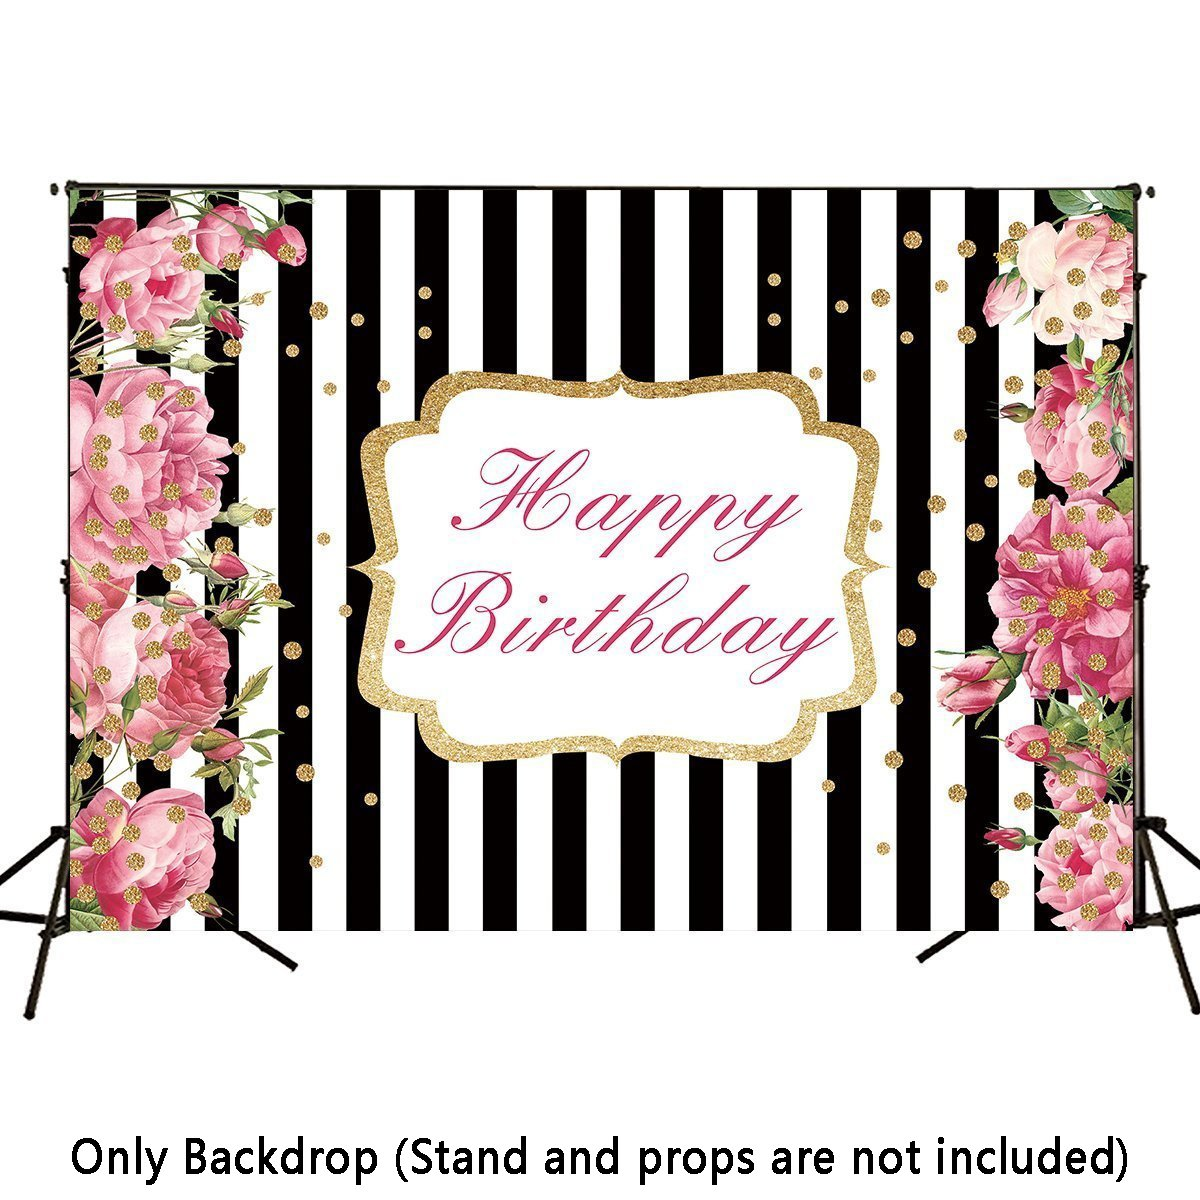 Allenjoy 7x5ft Black and White Stripe Pink Floral Birthday Backdrop Party Decoration Banner Gold Dots Adult Children Photocall Photo Booth Background